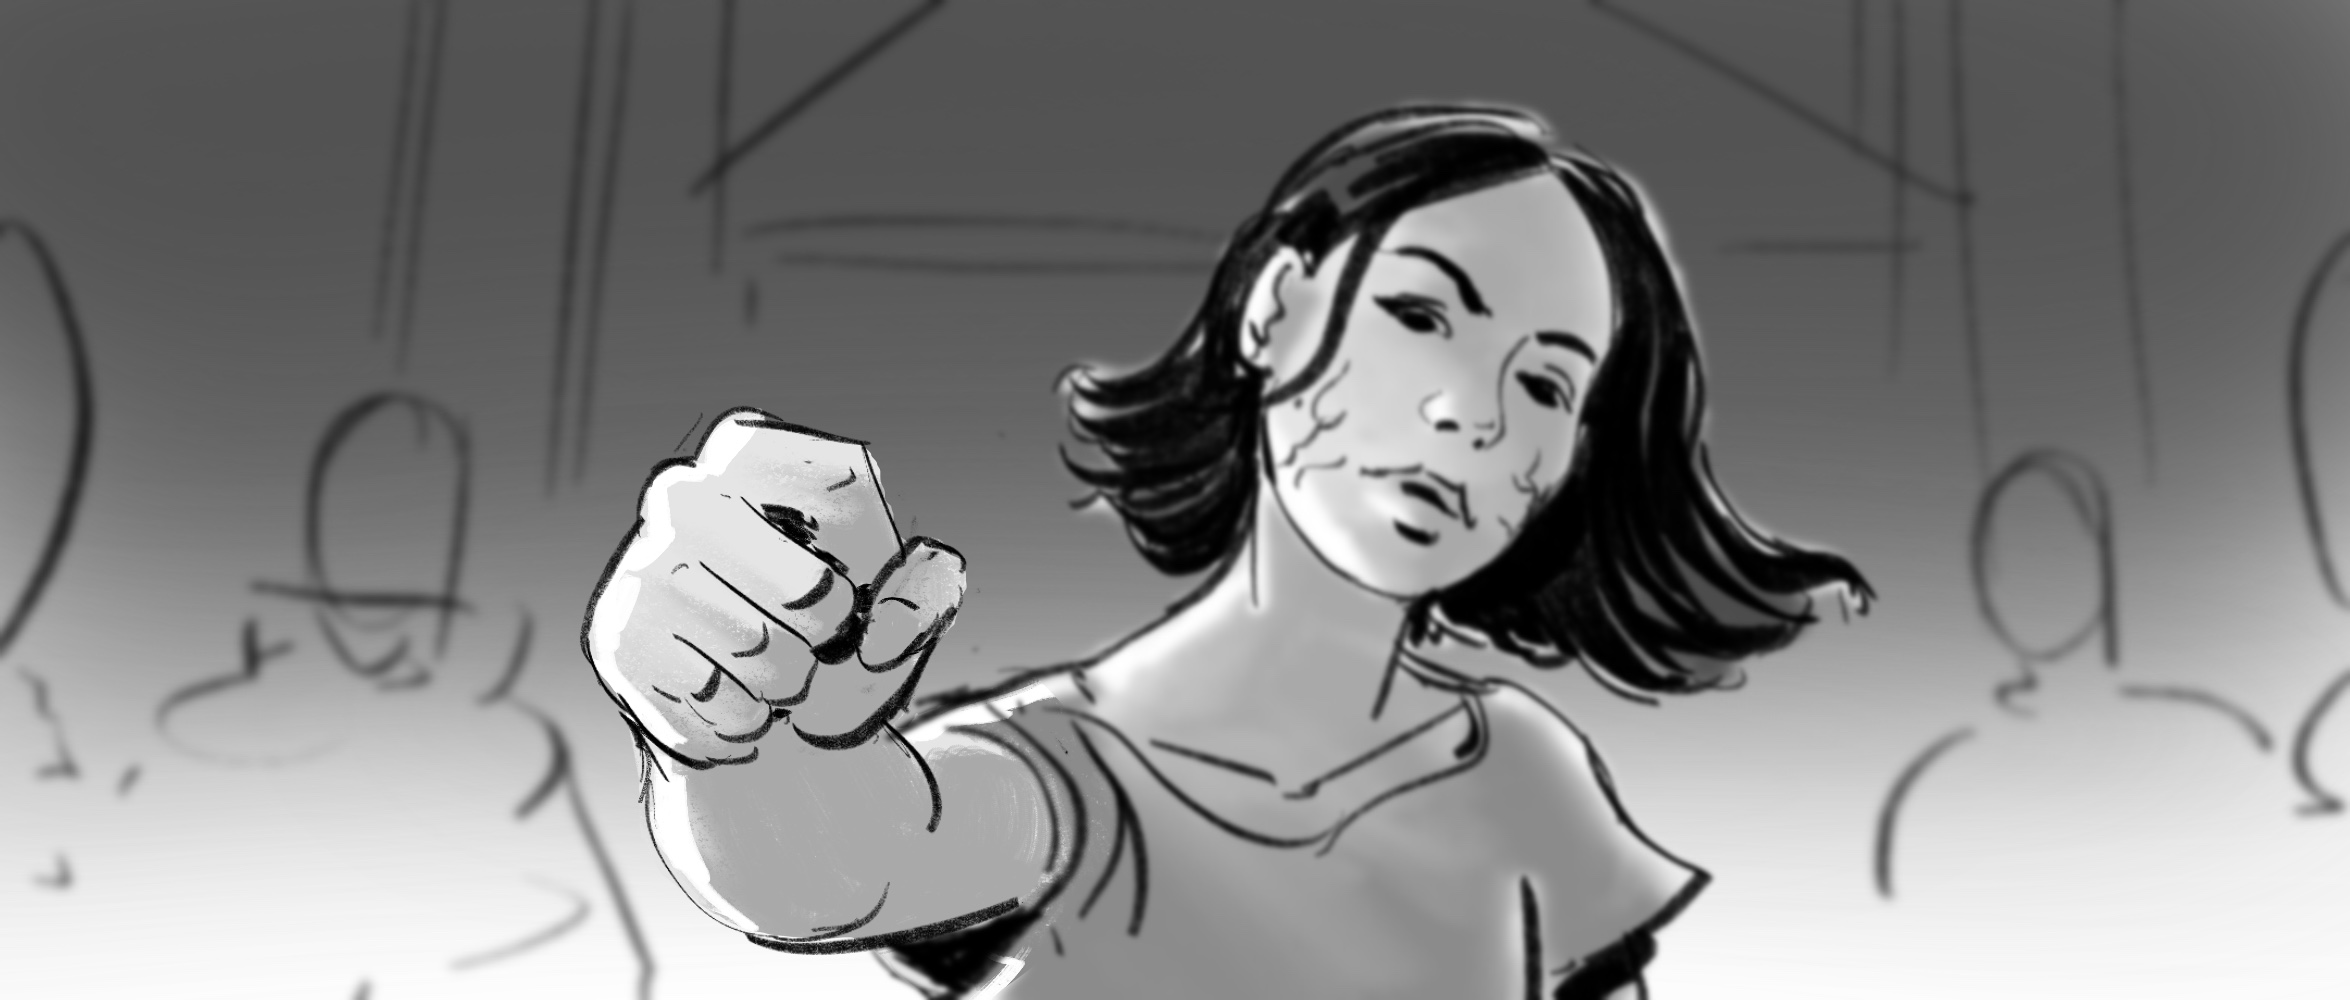 Lena_Boundaries_Storyboard_05a_v02.jpg